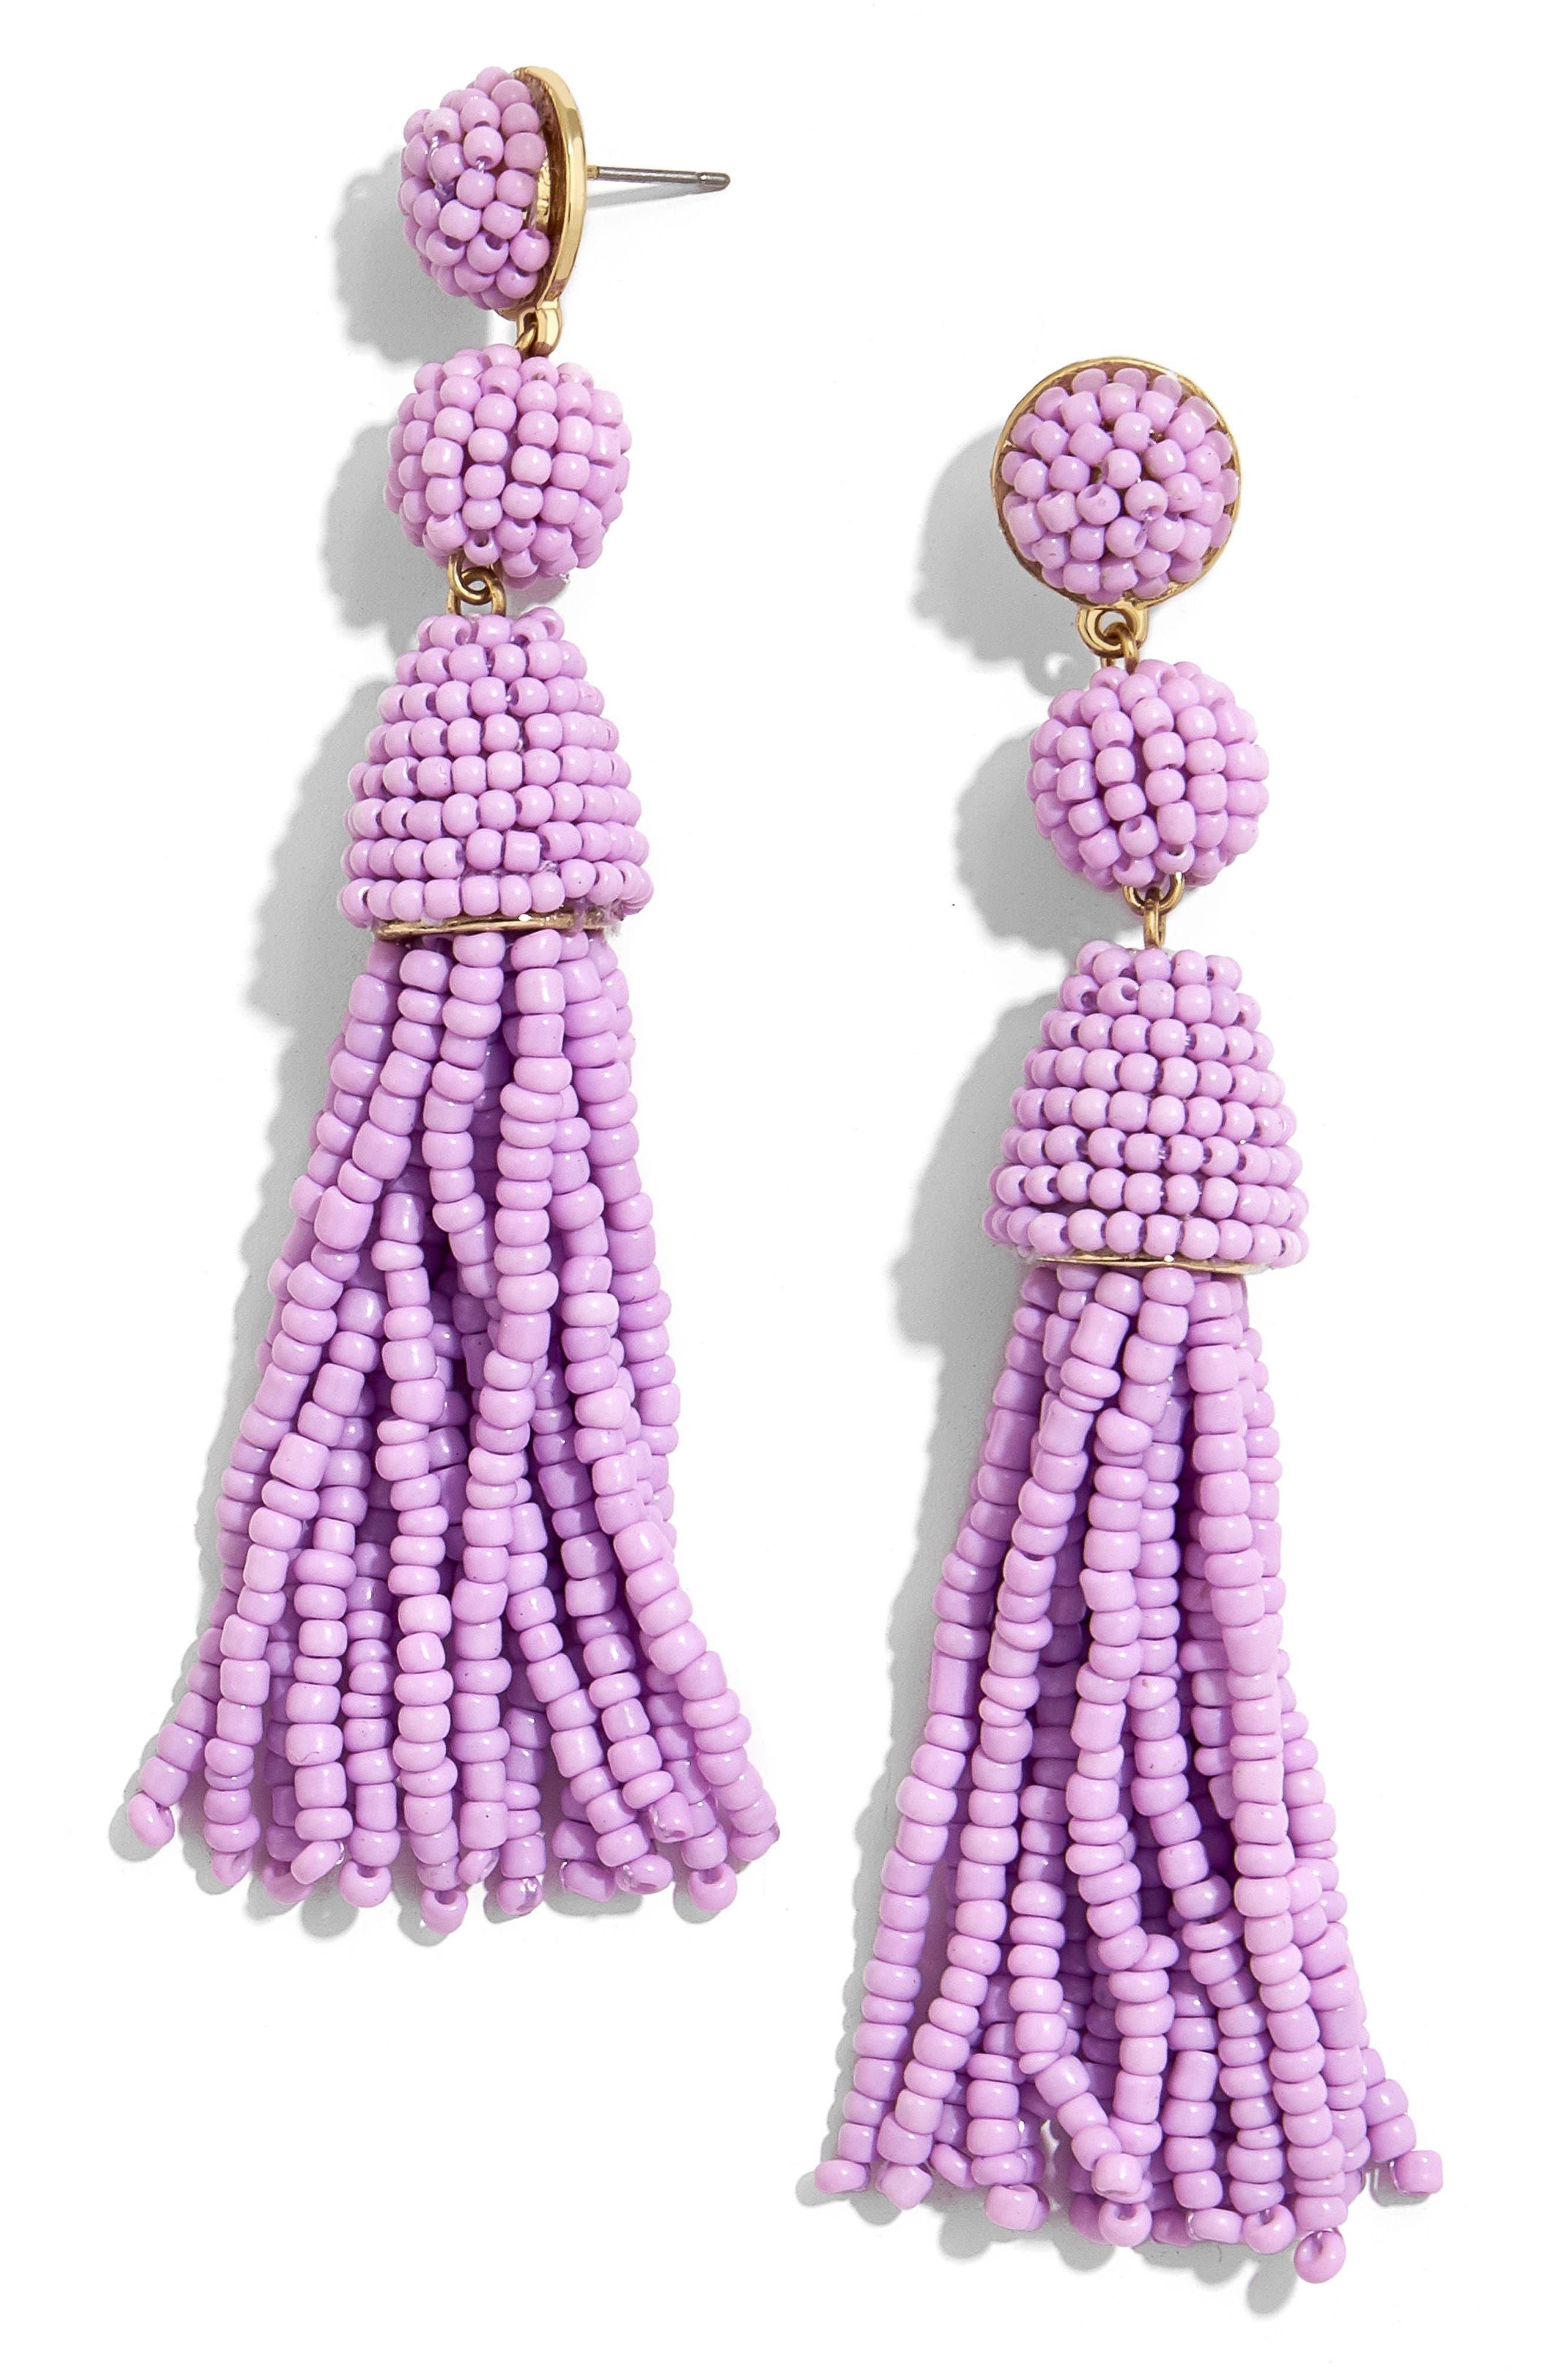 Granita Beaded Tassel Earrings,                             Main thumbnail 1, color,                             Lavender